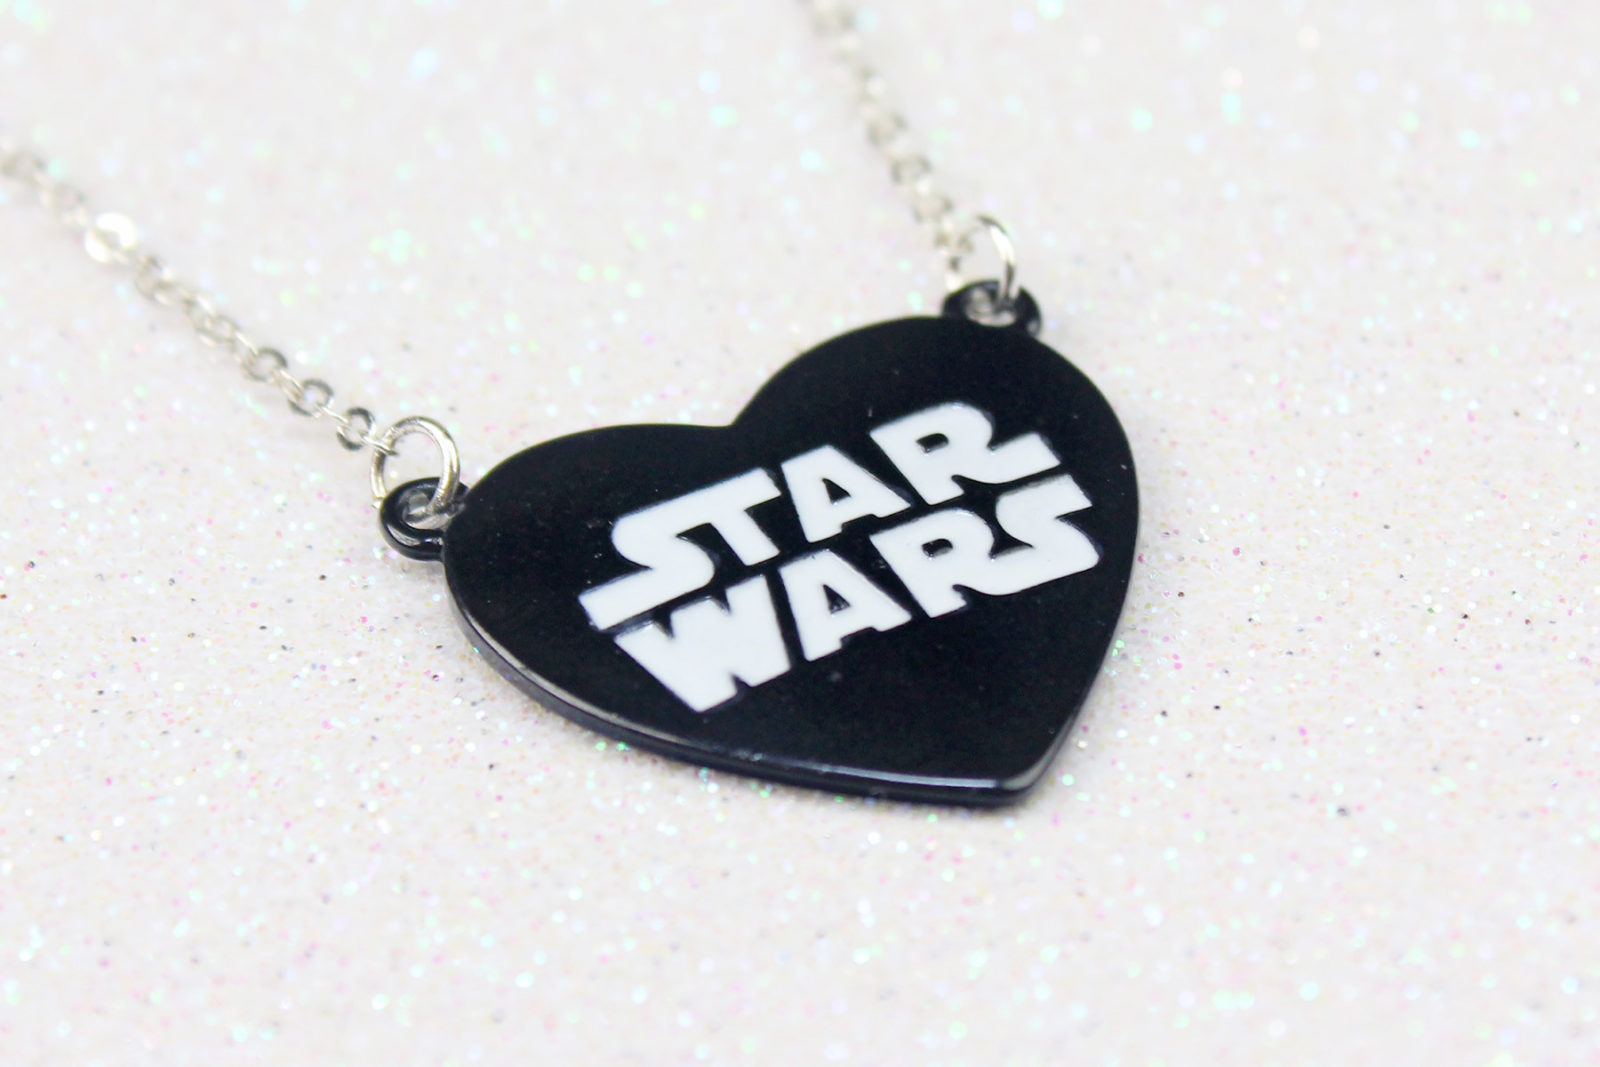 Review – Disney x Star Wars heart necklace